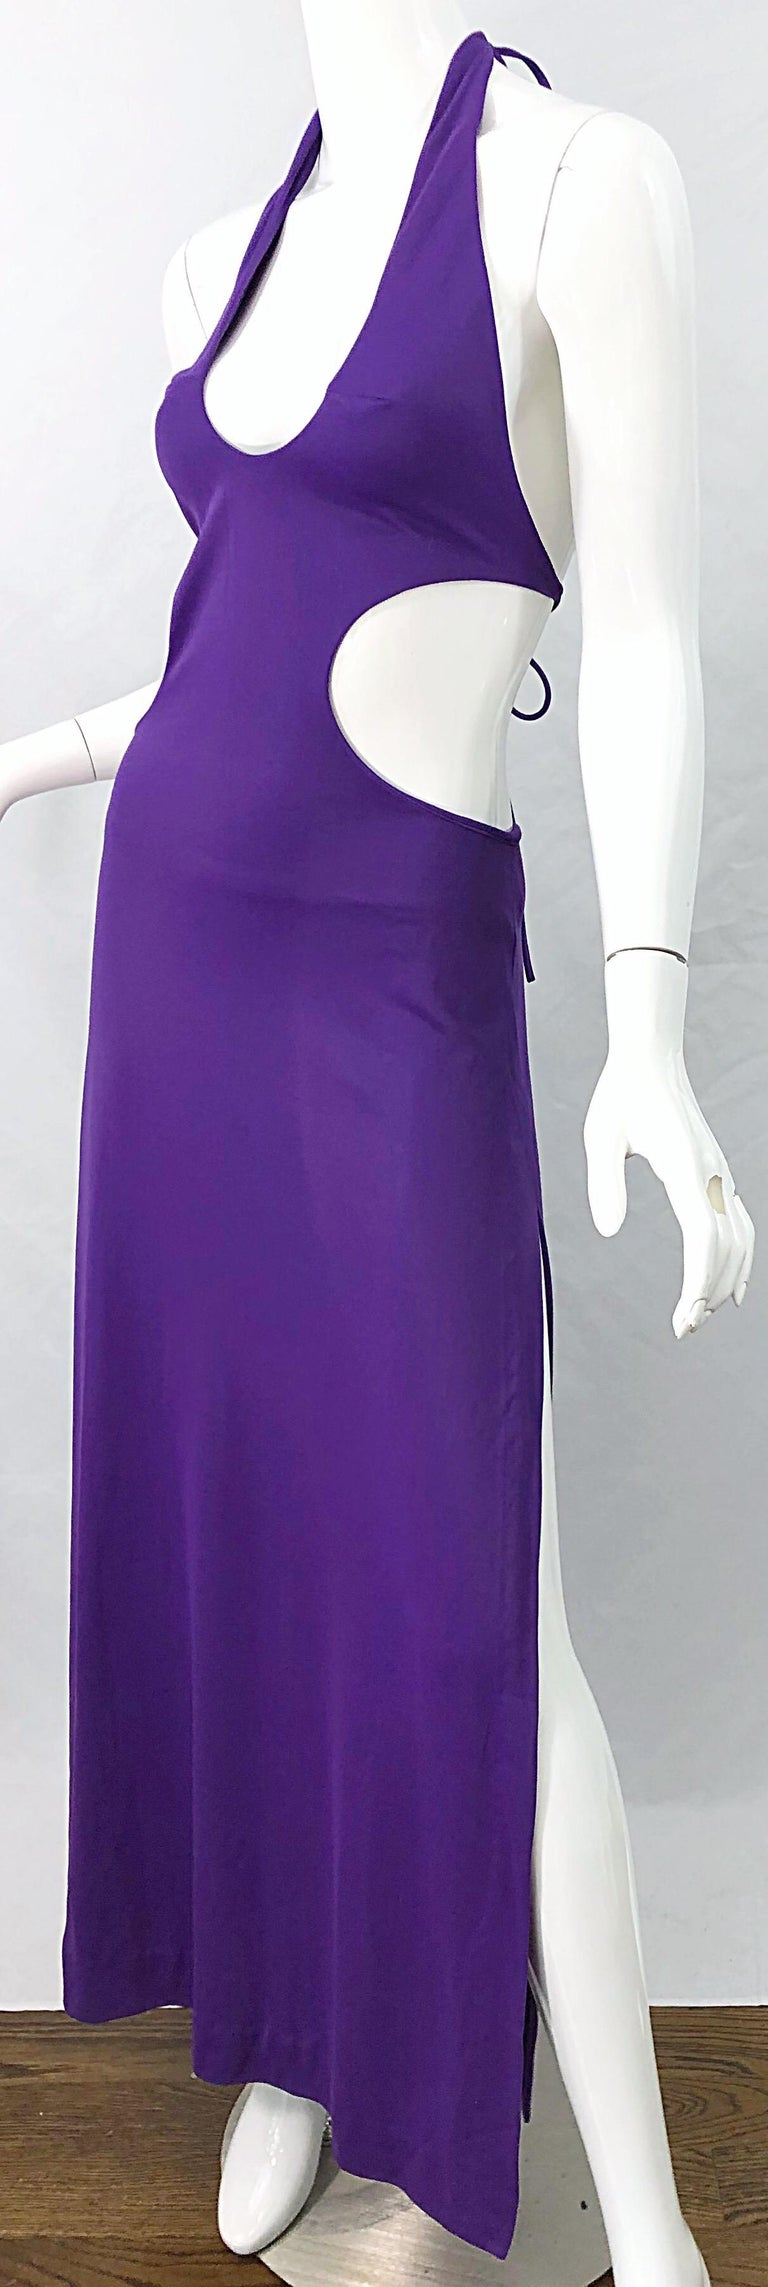 1970s Purple Cut - Out Sexy Jersey Vintage 70s Halter Maxi Dress Gown For Sale 5